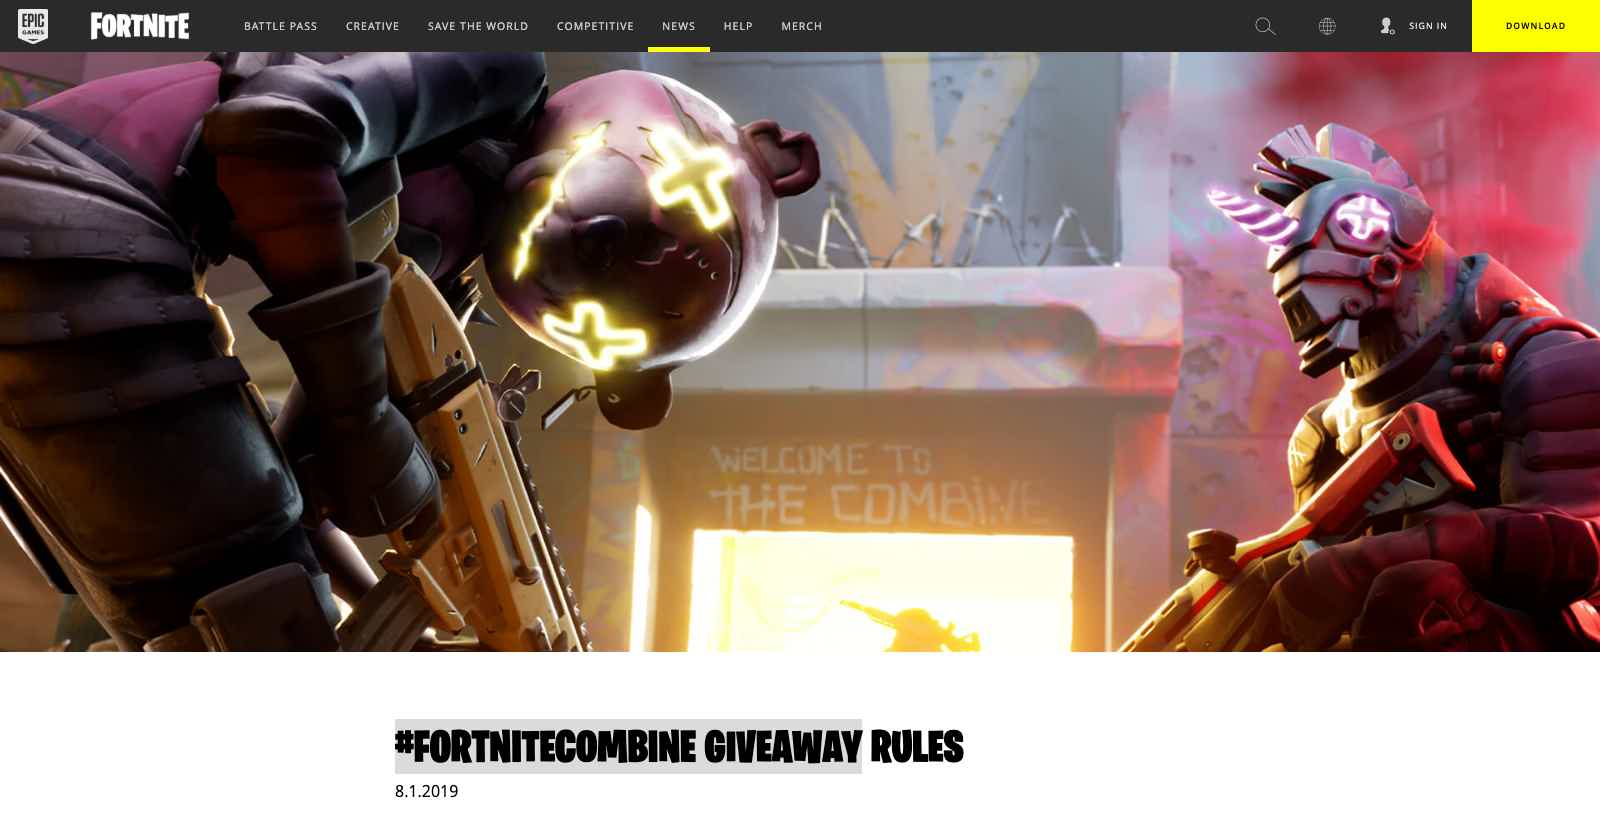 Fortnite Combine Giveaway